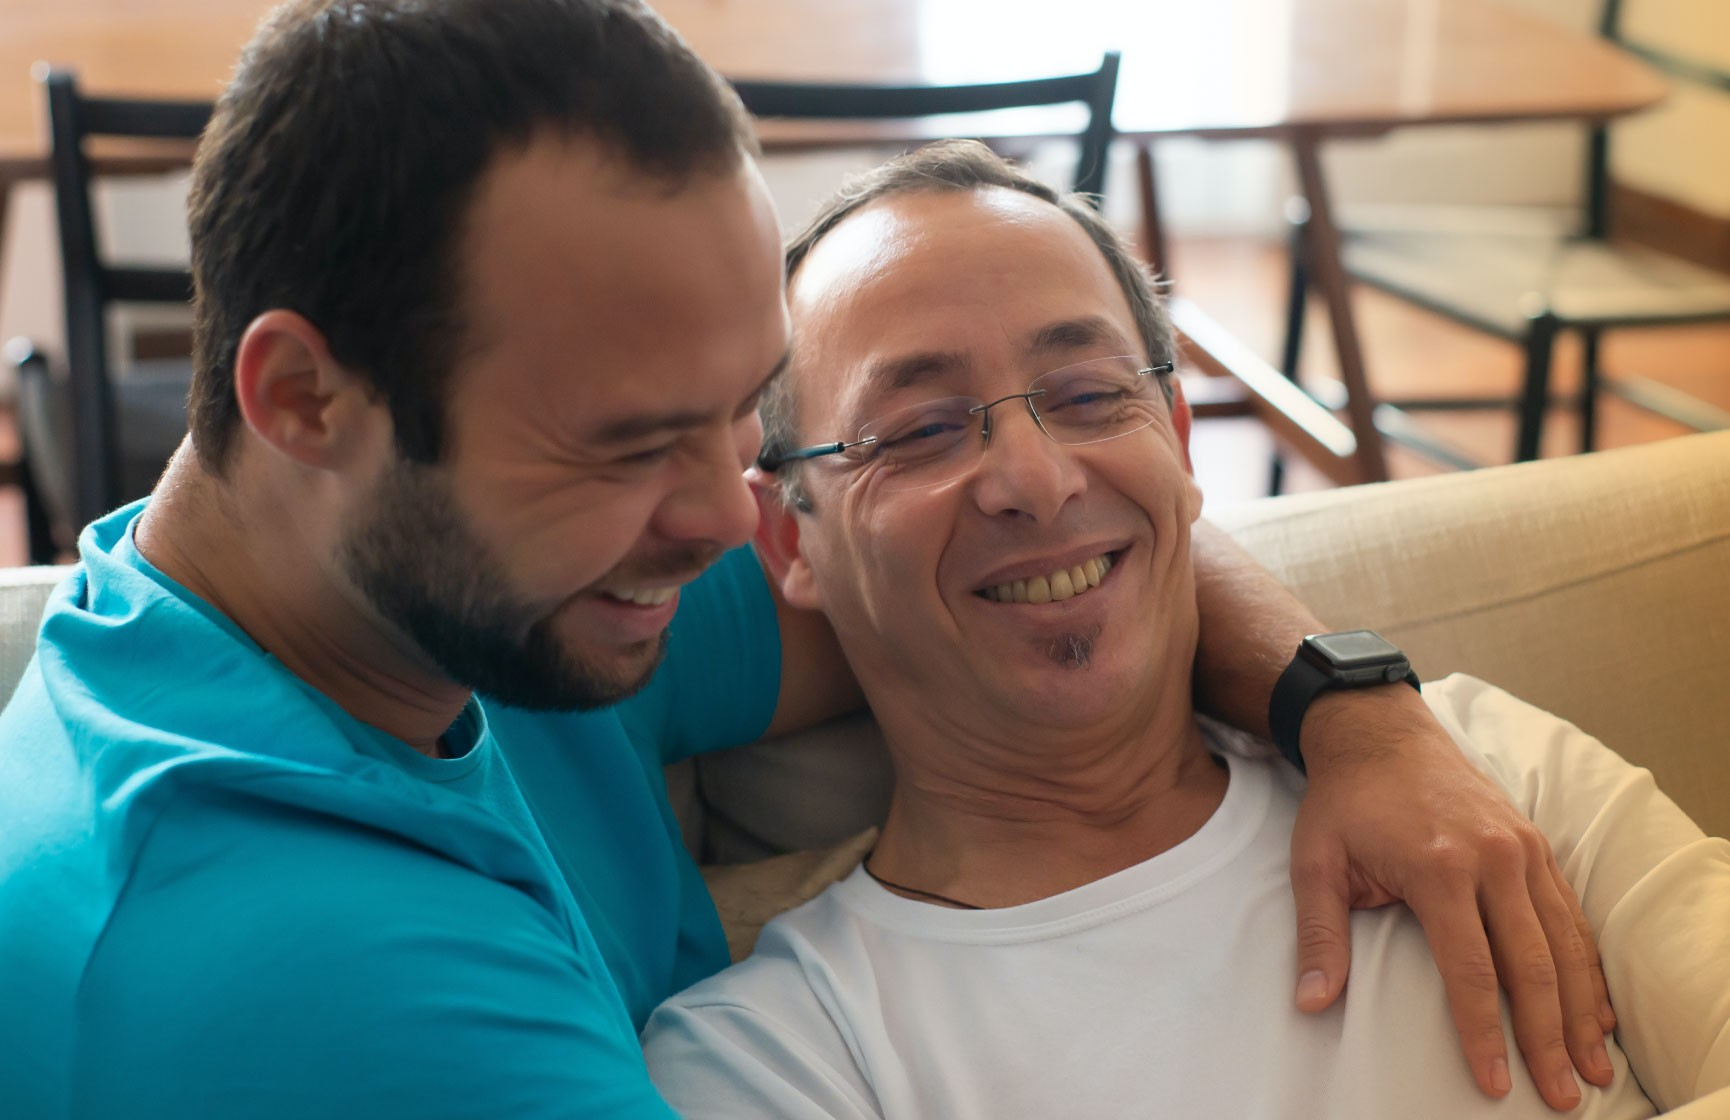 Two men embrace, showing that sexual identity and sexual behaviour do not always match